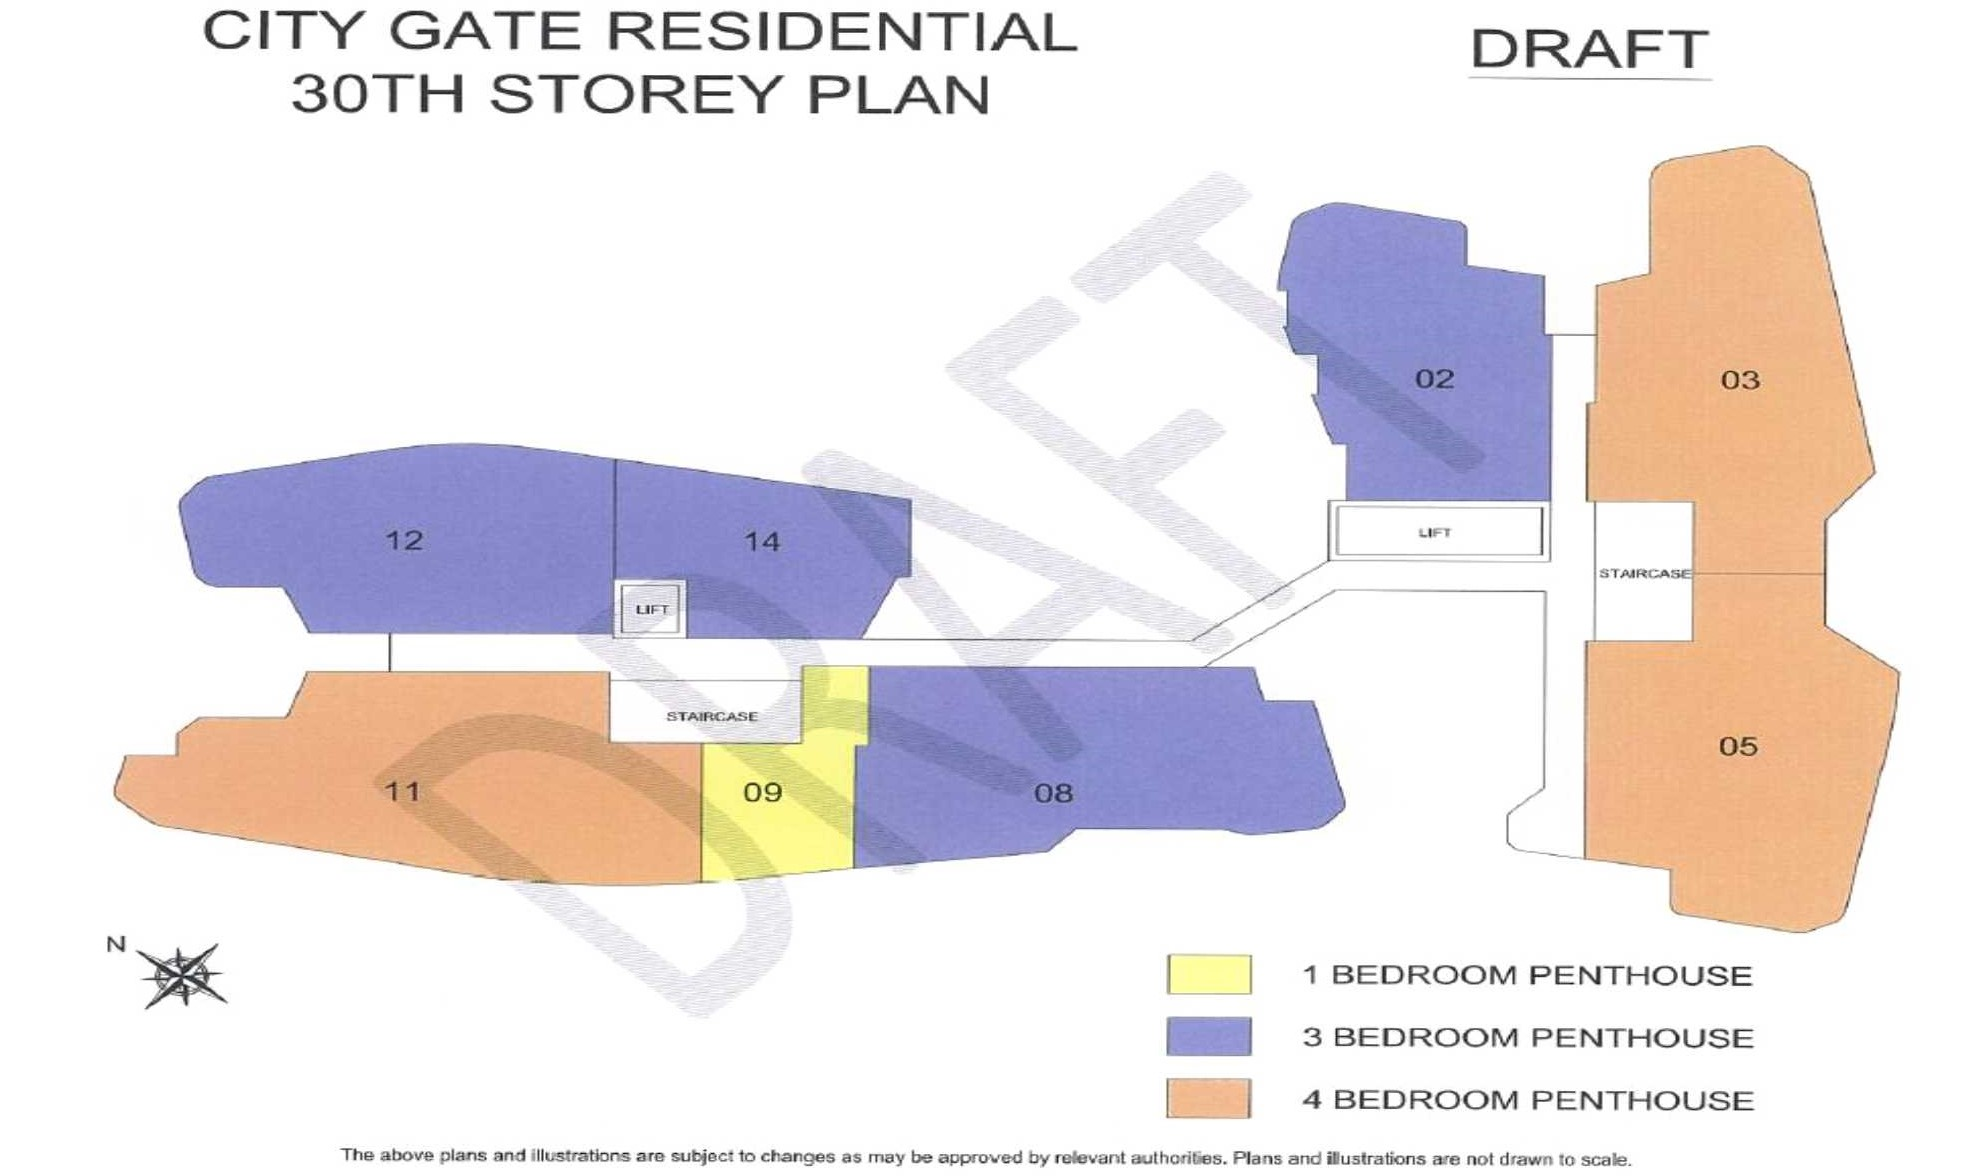 City Gate Residential 30th Storey Plan